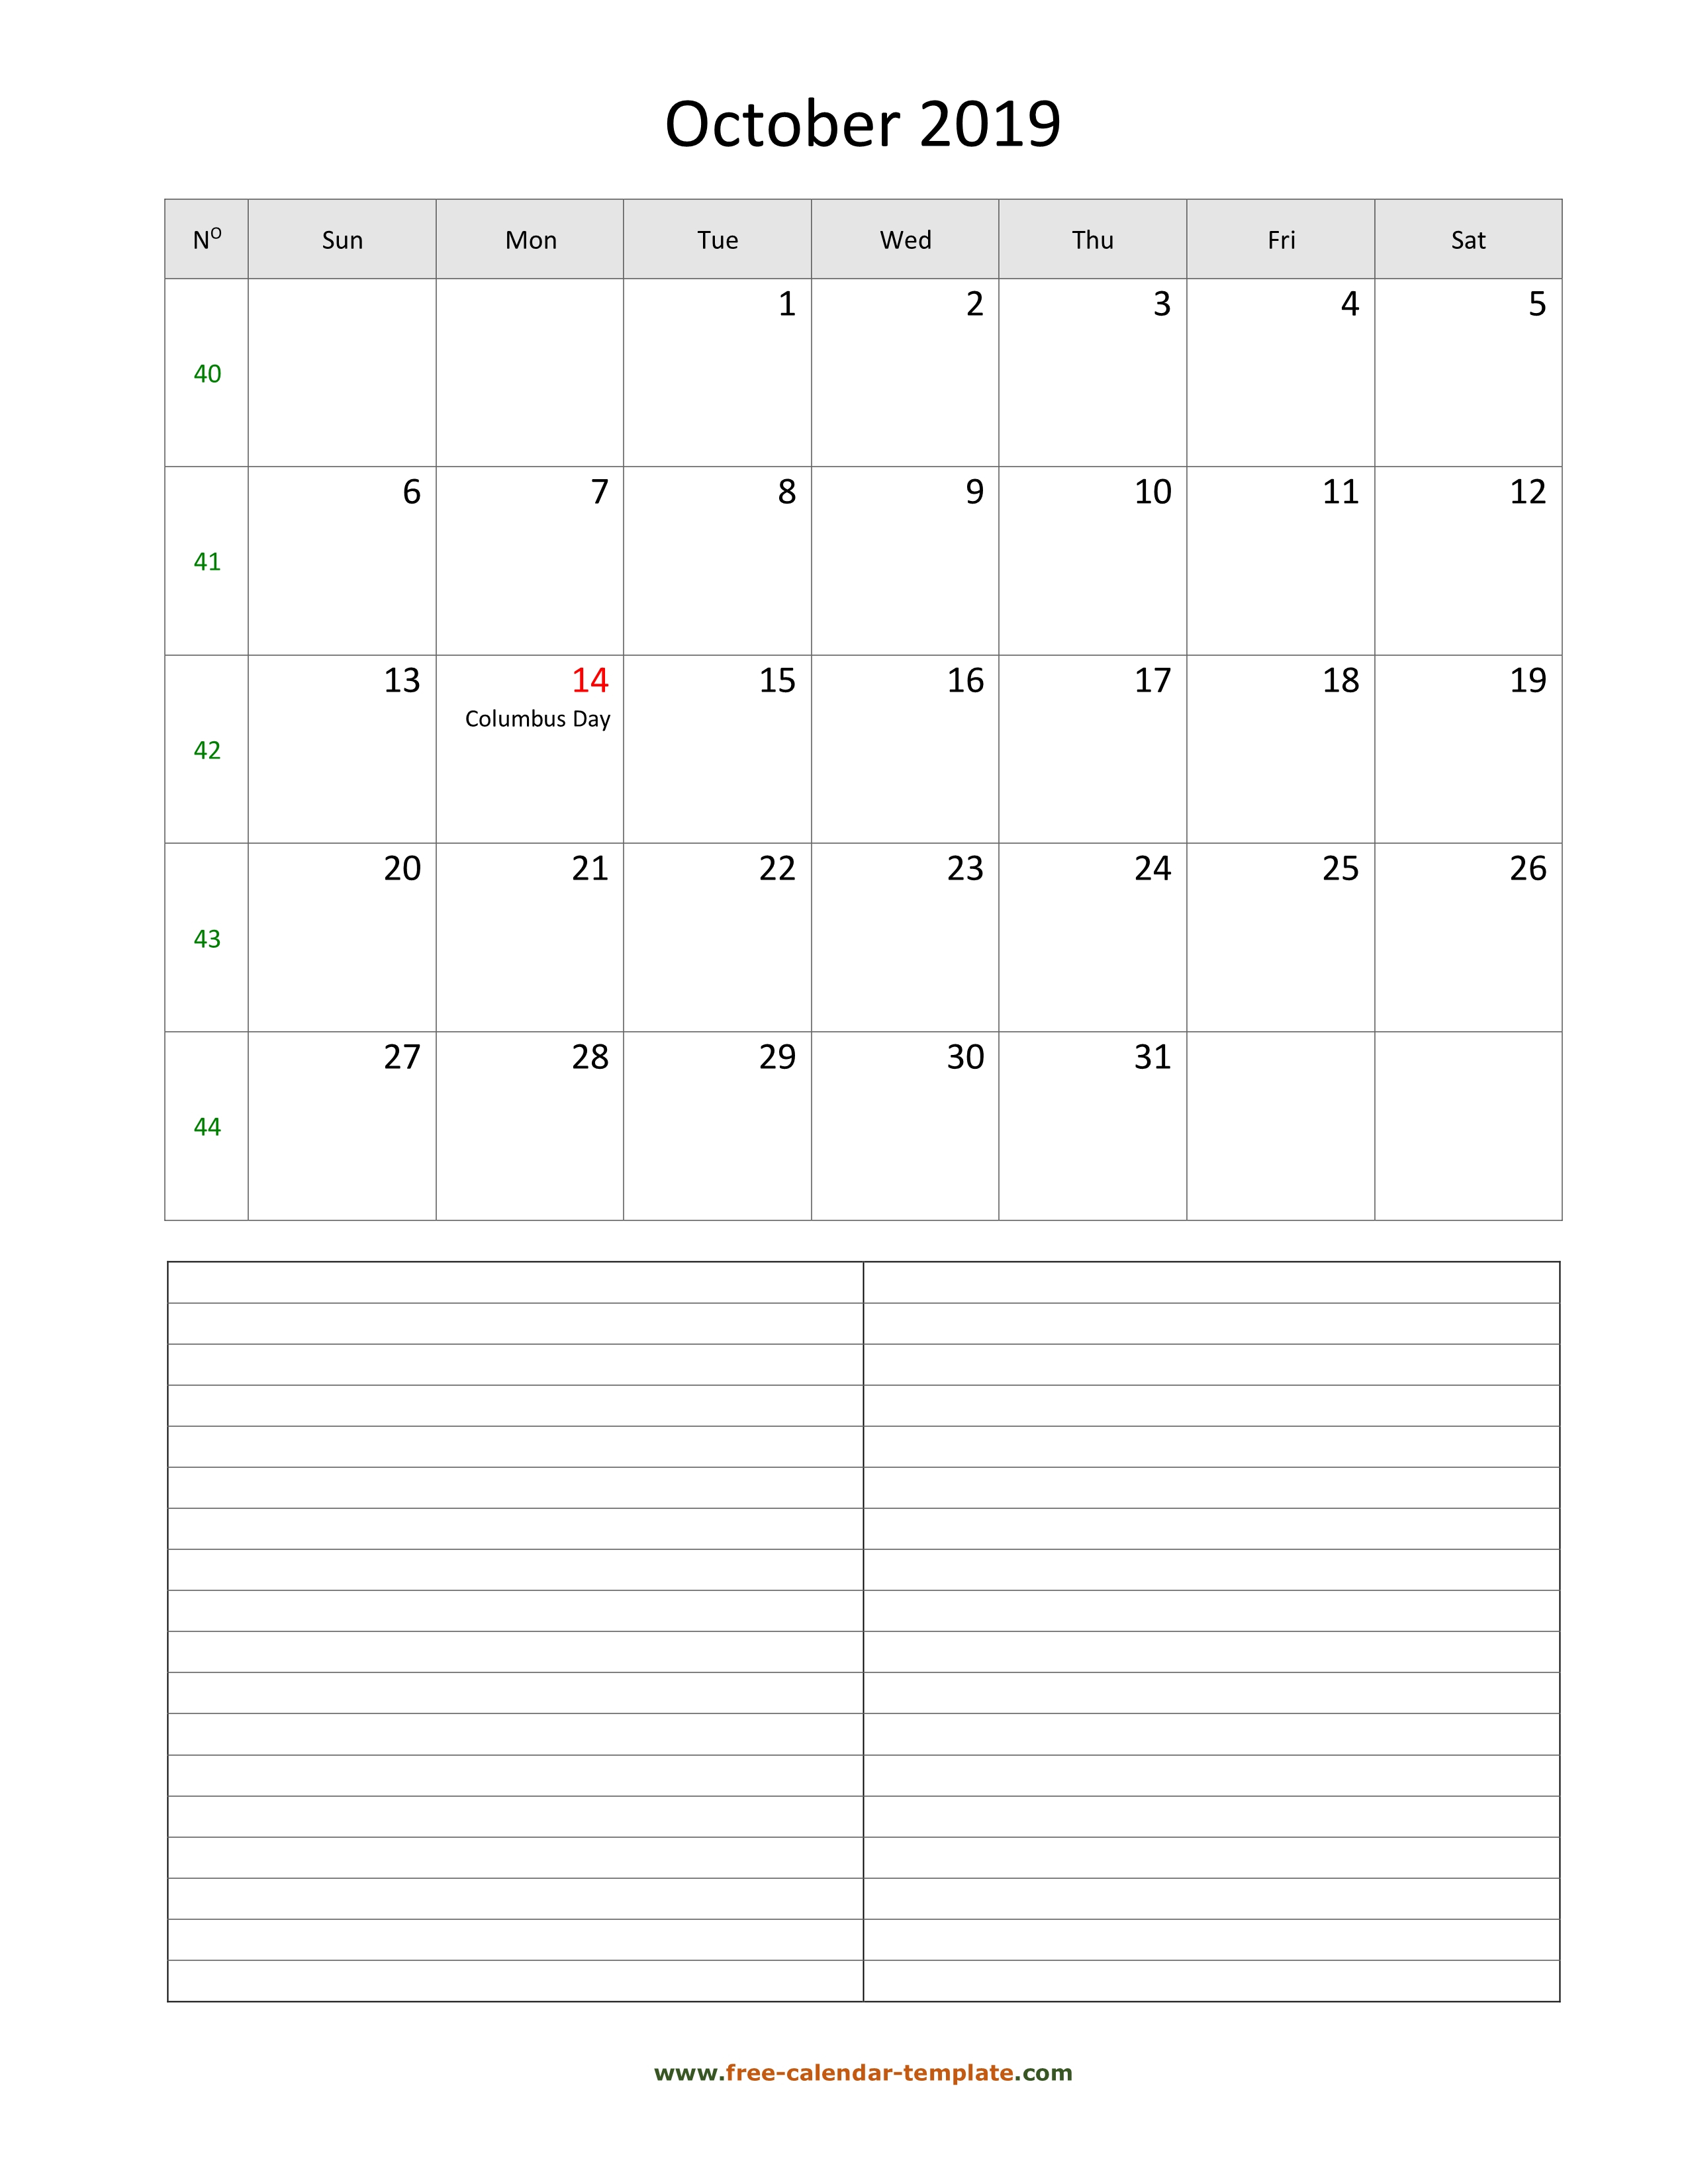 Printable October 2019 Calendar With Space For Appointments for October 2020 Printable Planning Calendar In Portrait